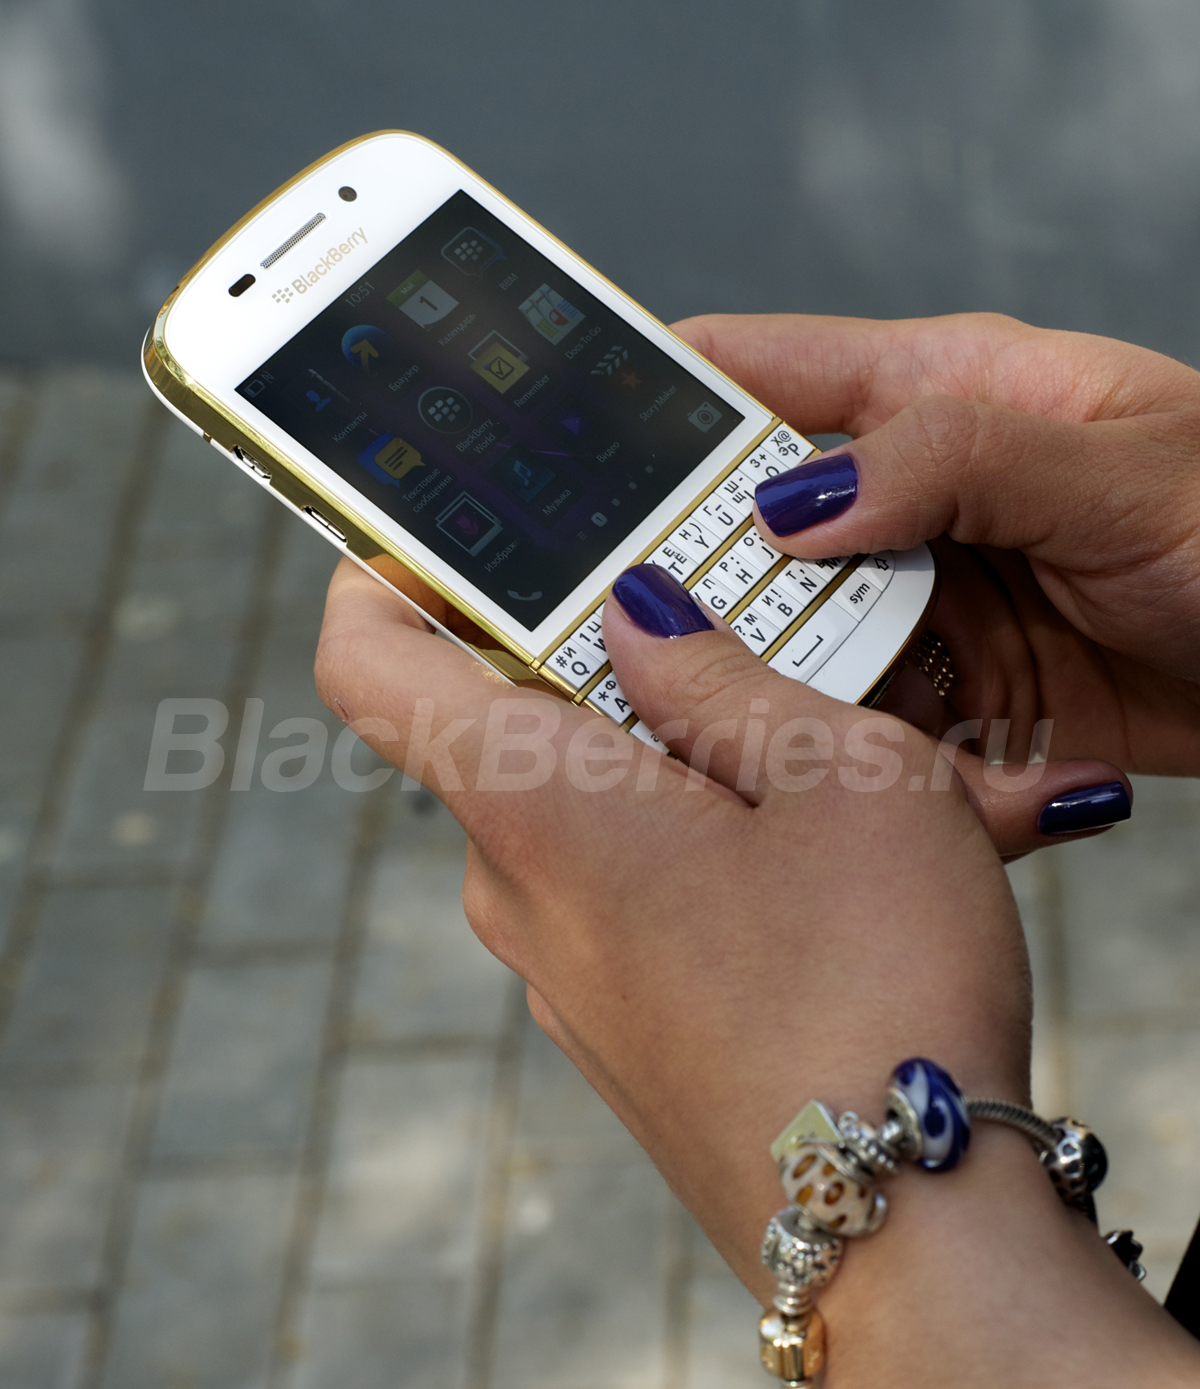 BlackBerry-Q10-Special-Edition-3